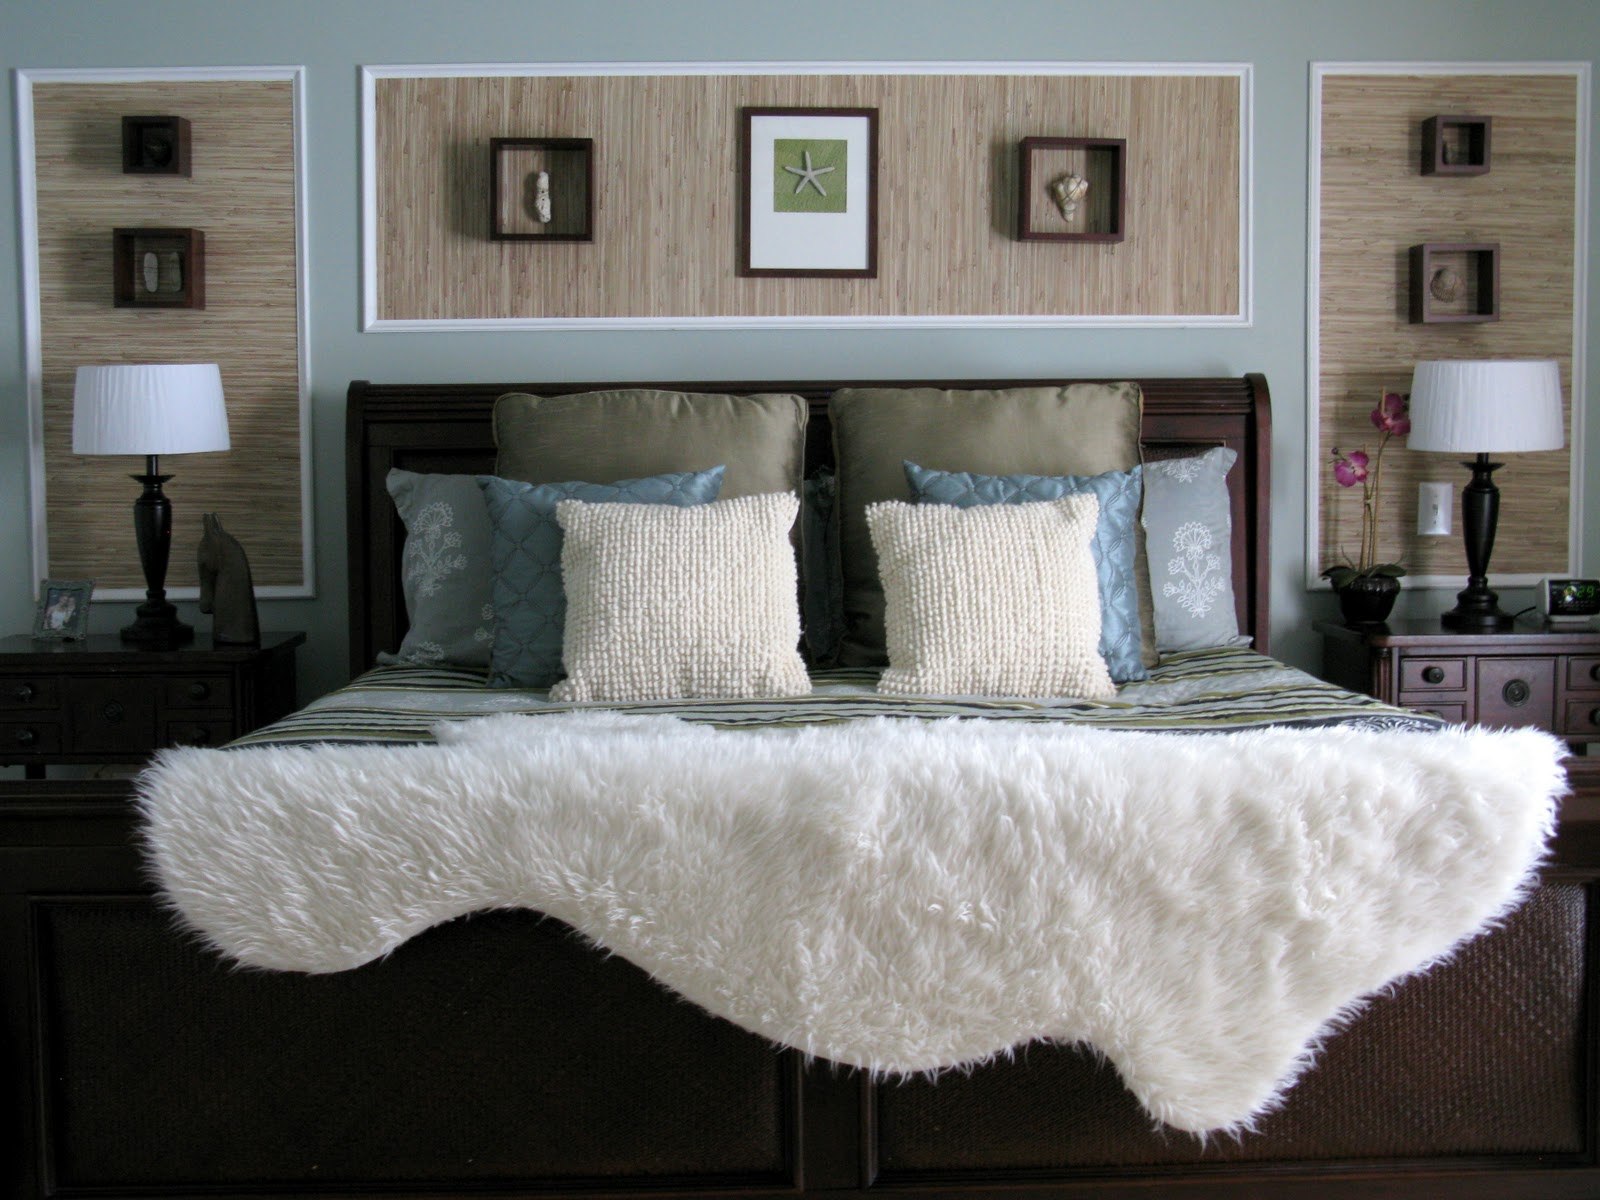 Loveyourroom voted one of the top bedrooms by houzz readers my headboard canopy ideas are on - Bedroom pictures ideas ...